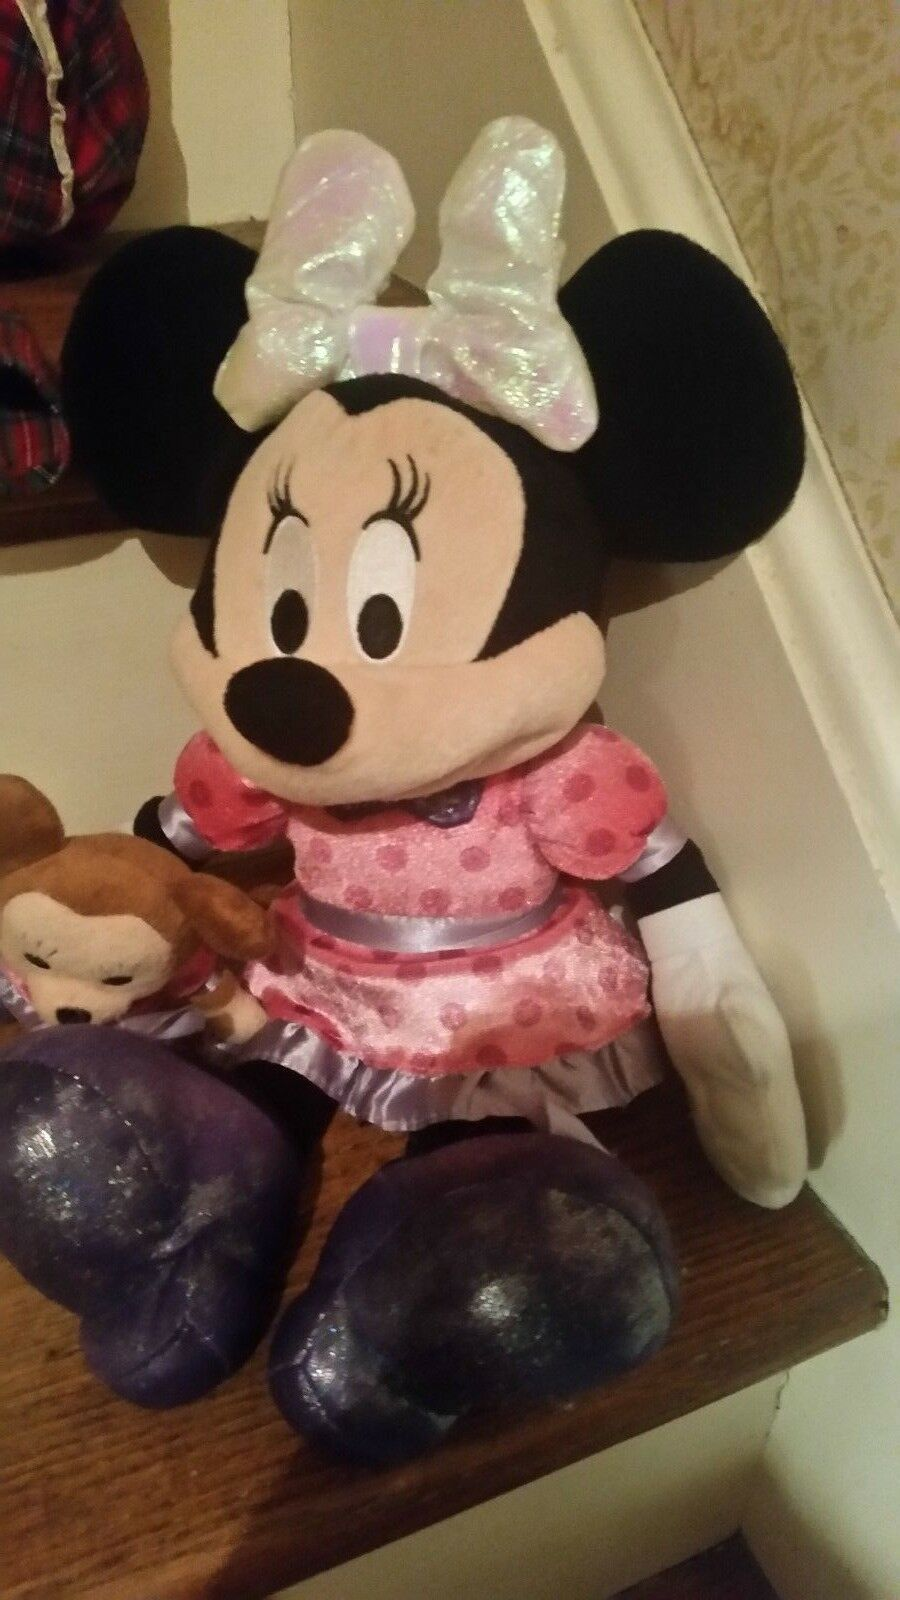 Minnie Mouse talking and bow lights up holding holding holding a stuffed animal musical figurine b2e